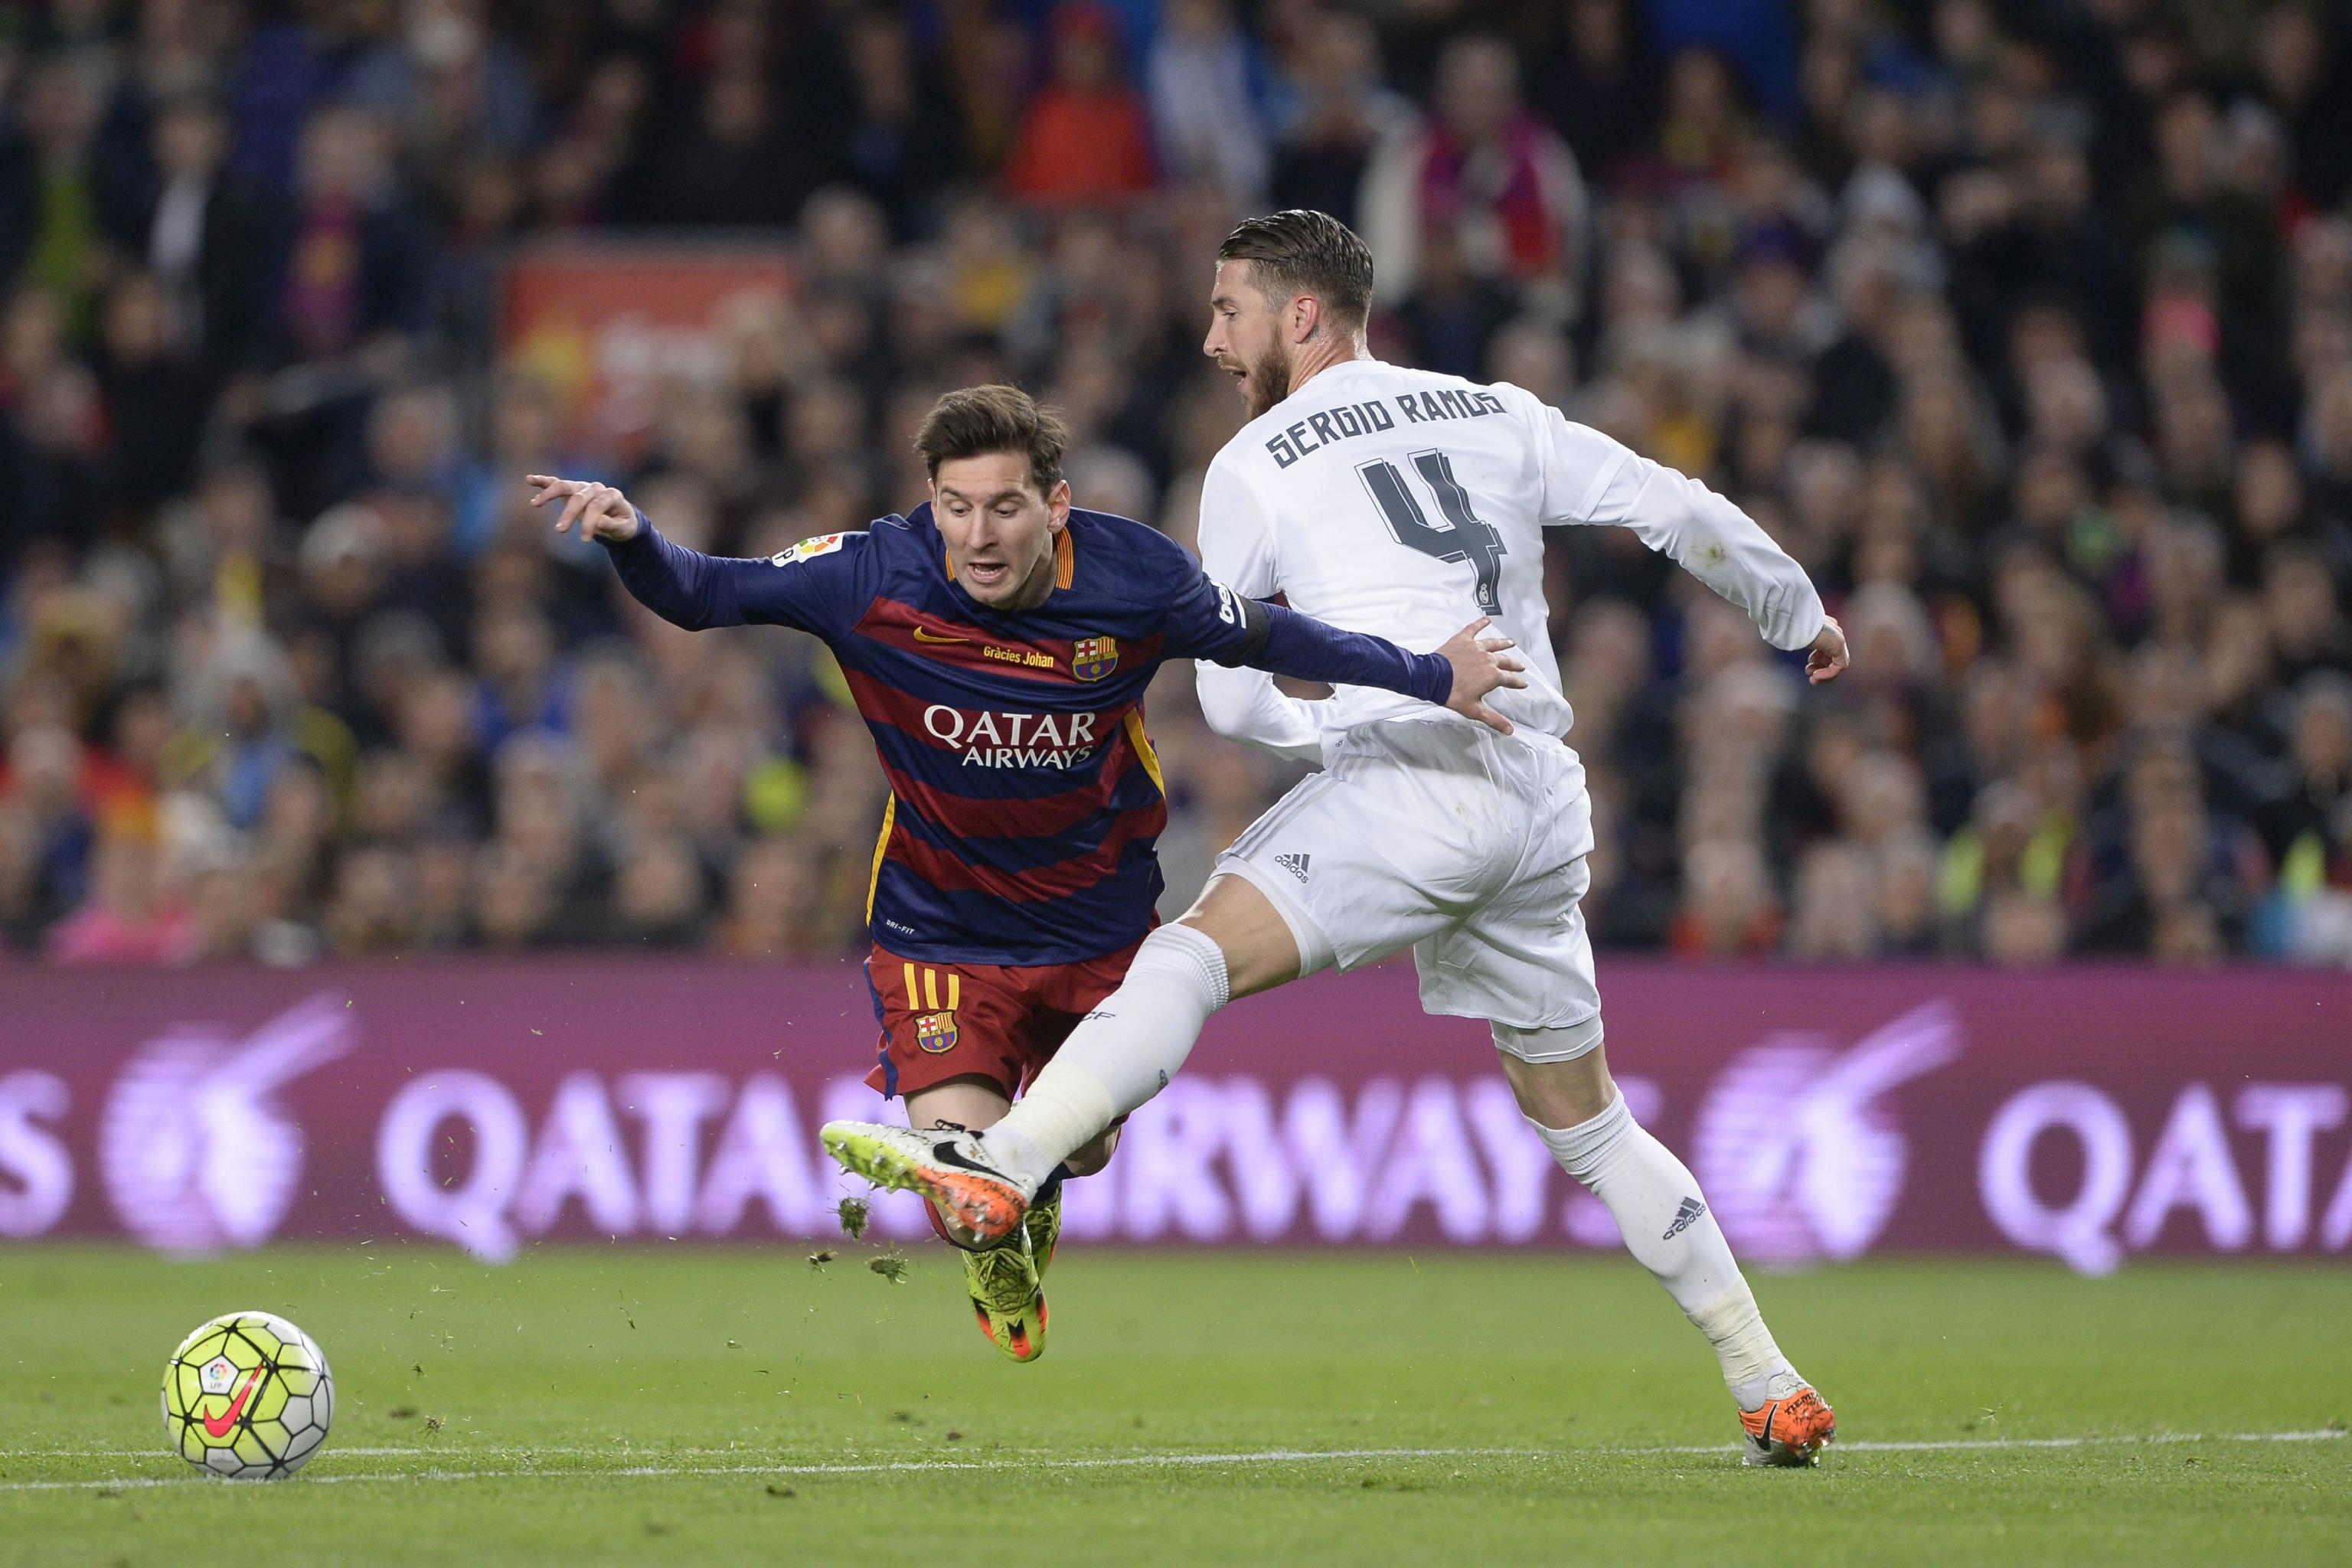 Barcelona Vs Real Madrid The 3 Biggest Games In Recent El Clasico History Bleacher Report Latest News Videos And Highlights